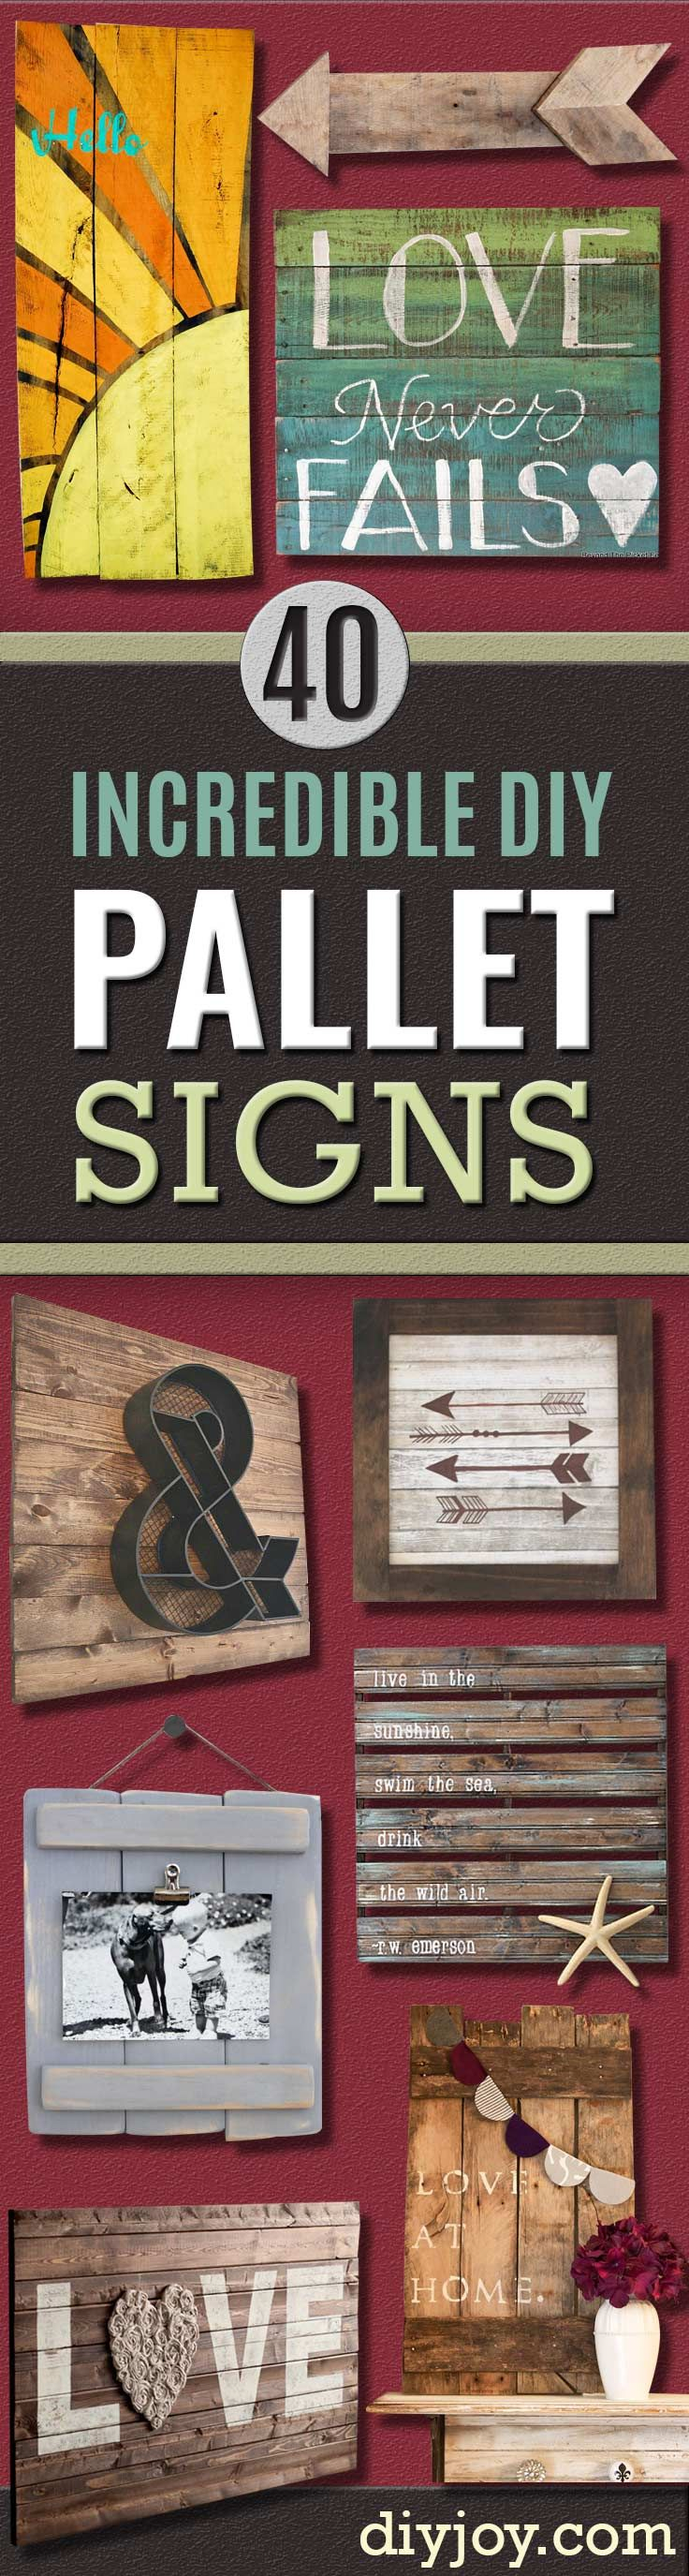 graphic regarding Homemade Signs Ideas titled 40 Amazing Do-it-yourself Pallet Indications Crafts Selfmade wall artwork